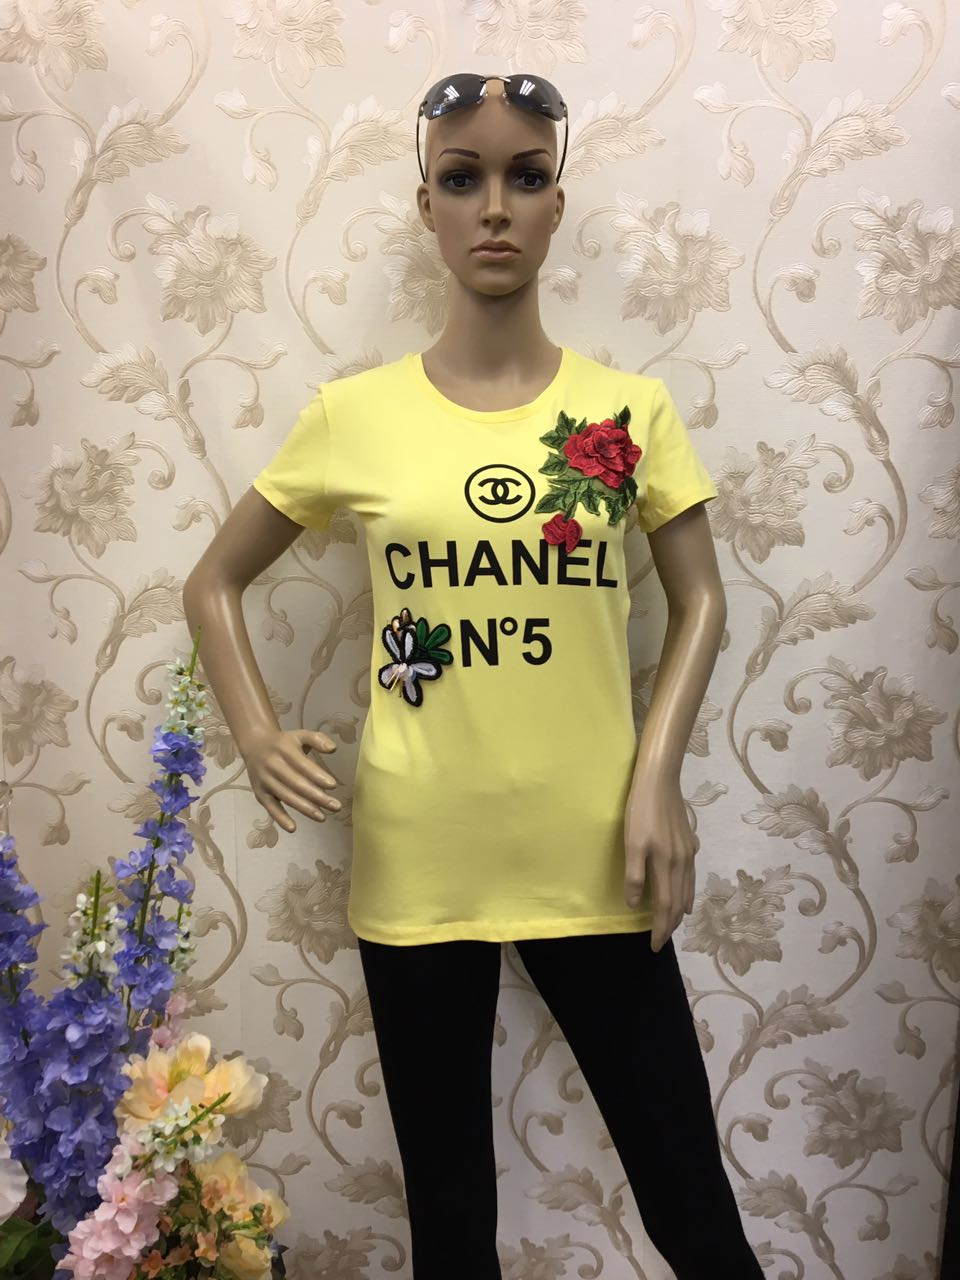 chanel-shirt-detailed-with-embellish-embroidery-